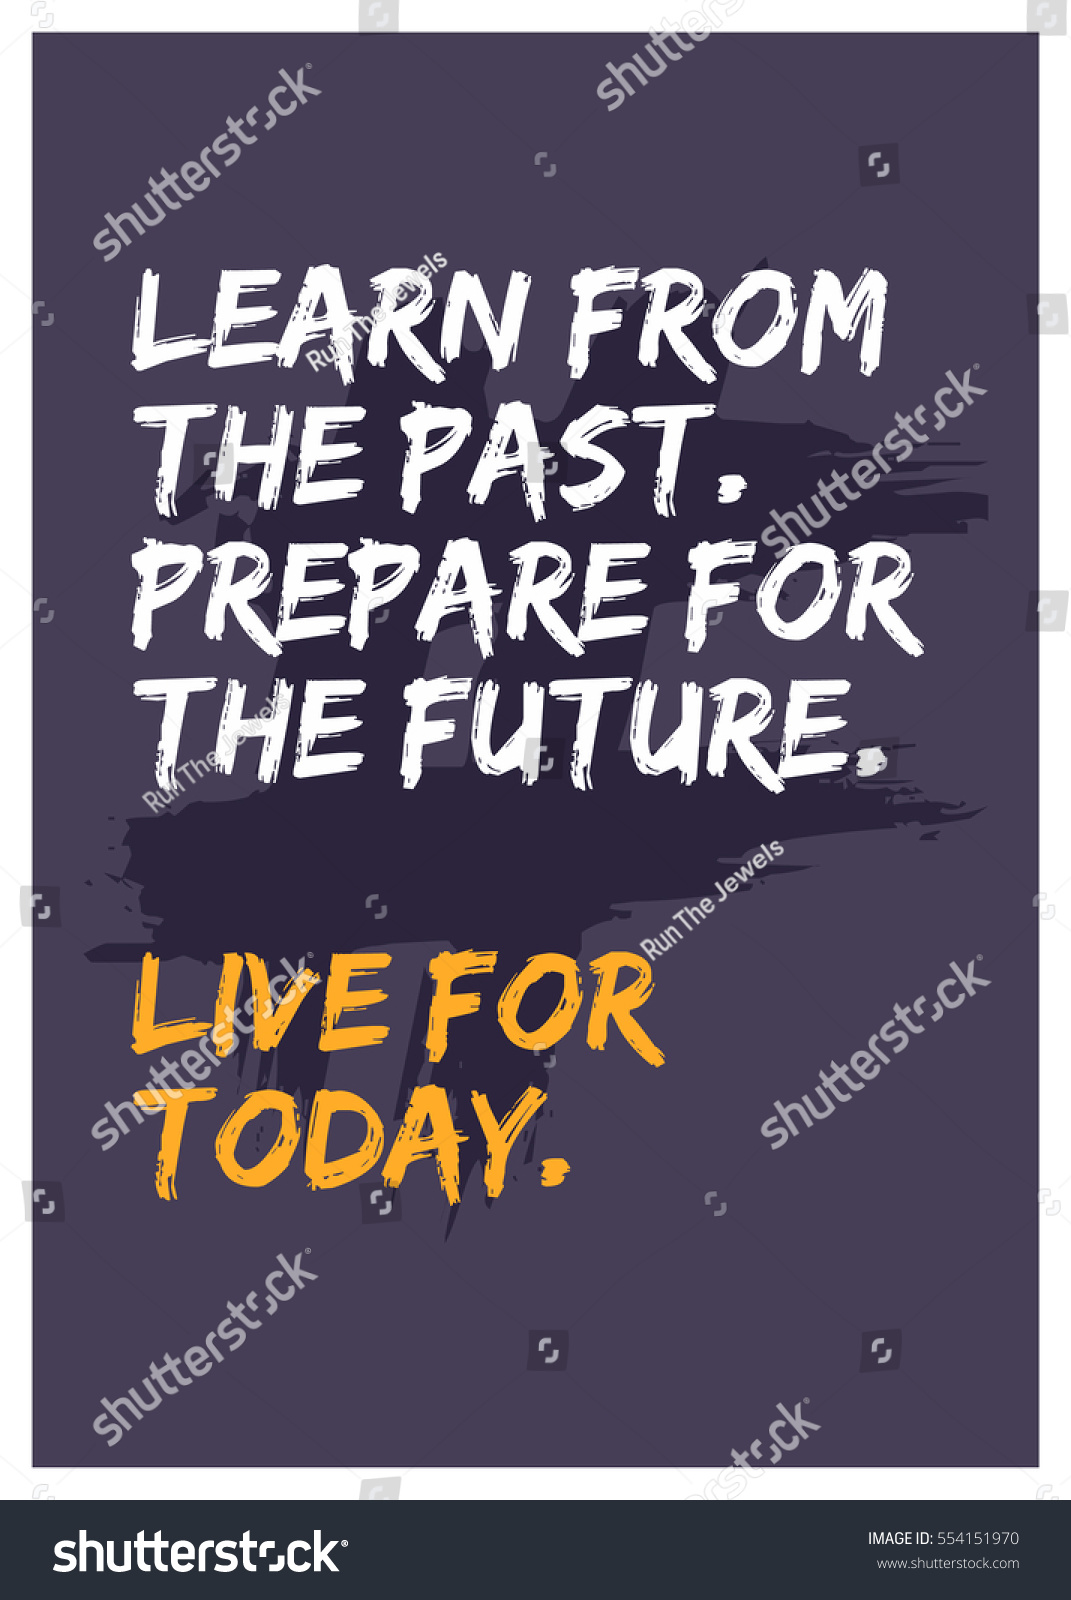 Live For Today Quotes Learn Past Prepare Future Live Today Stock Vector 554151970